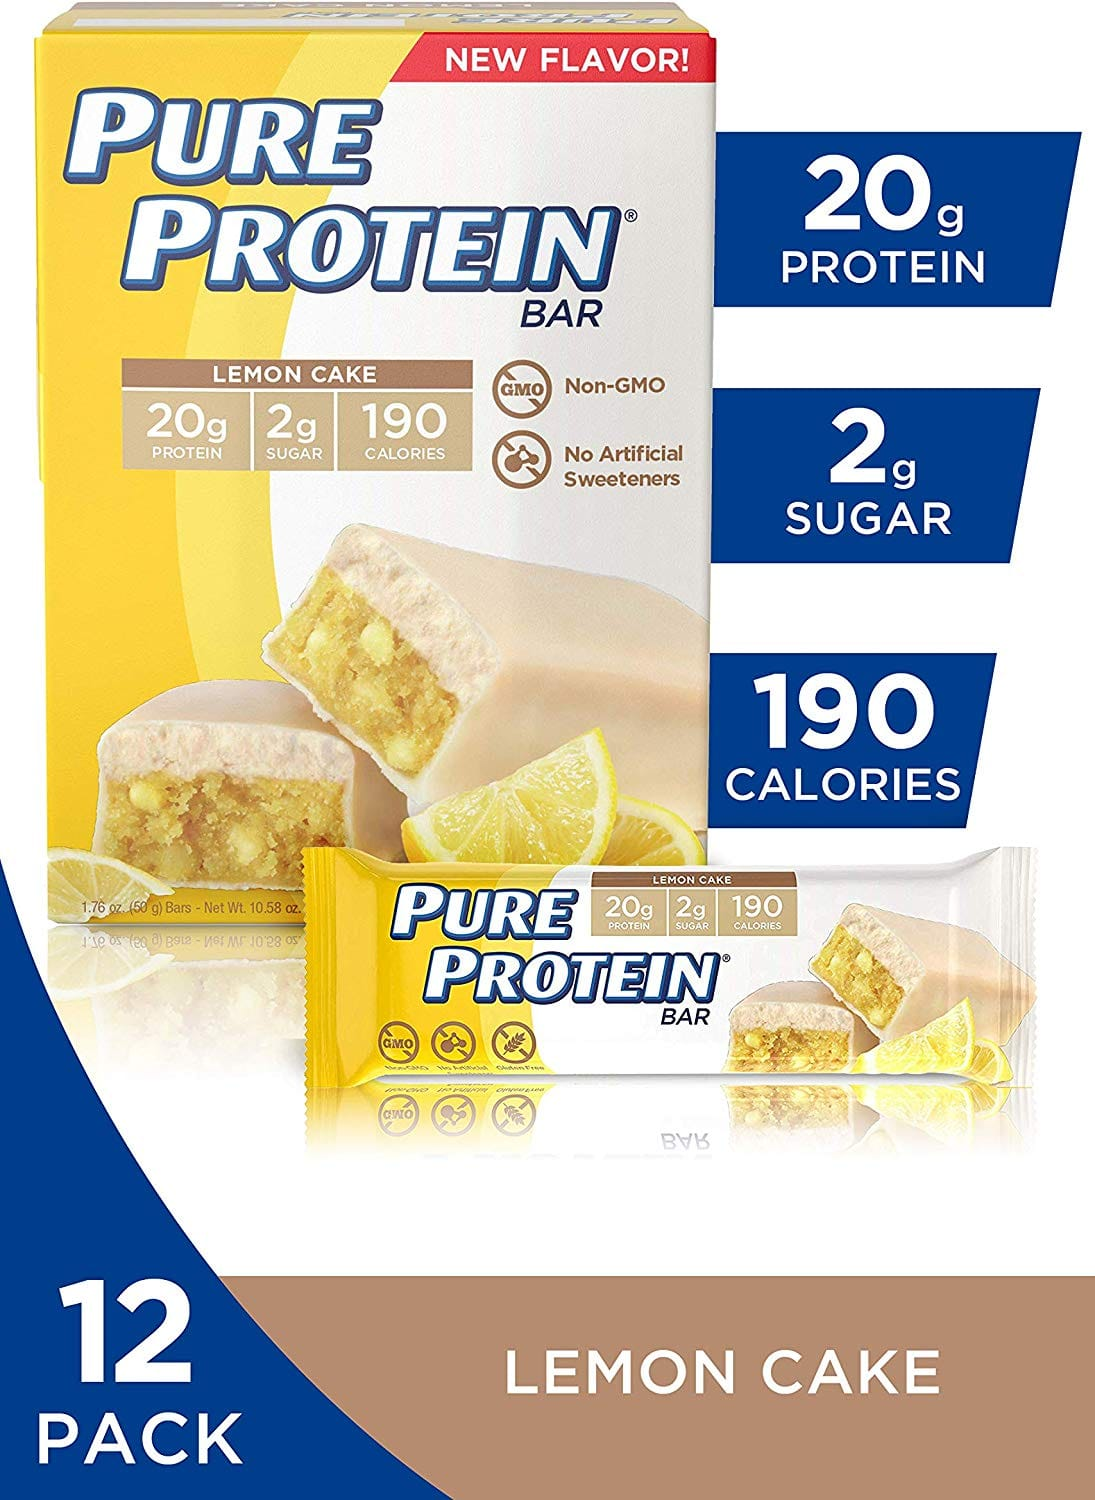 Pure Protein Bars, High Protein, Nutritious Scks to Support Energy, Low Sugar, Gluten Free, Lemon Cake, 1.76 Oz, Pack of 12 $8.62